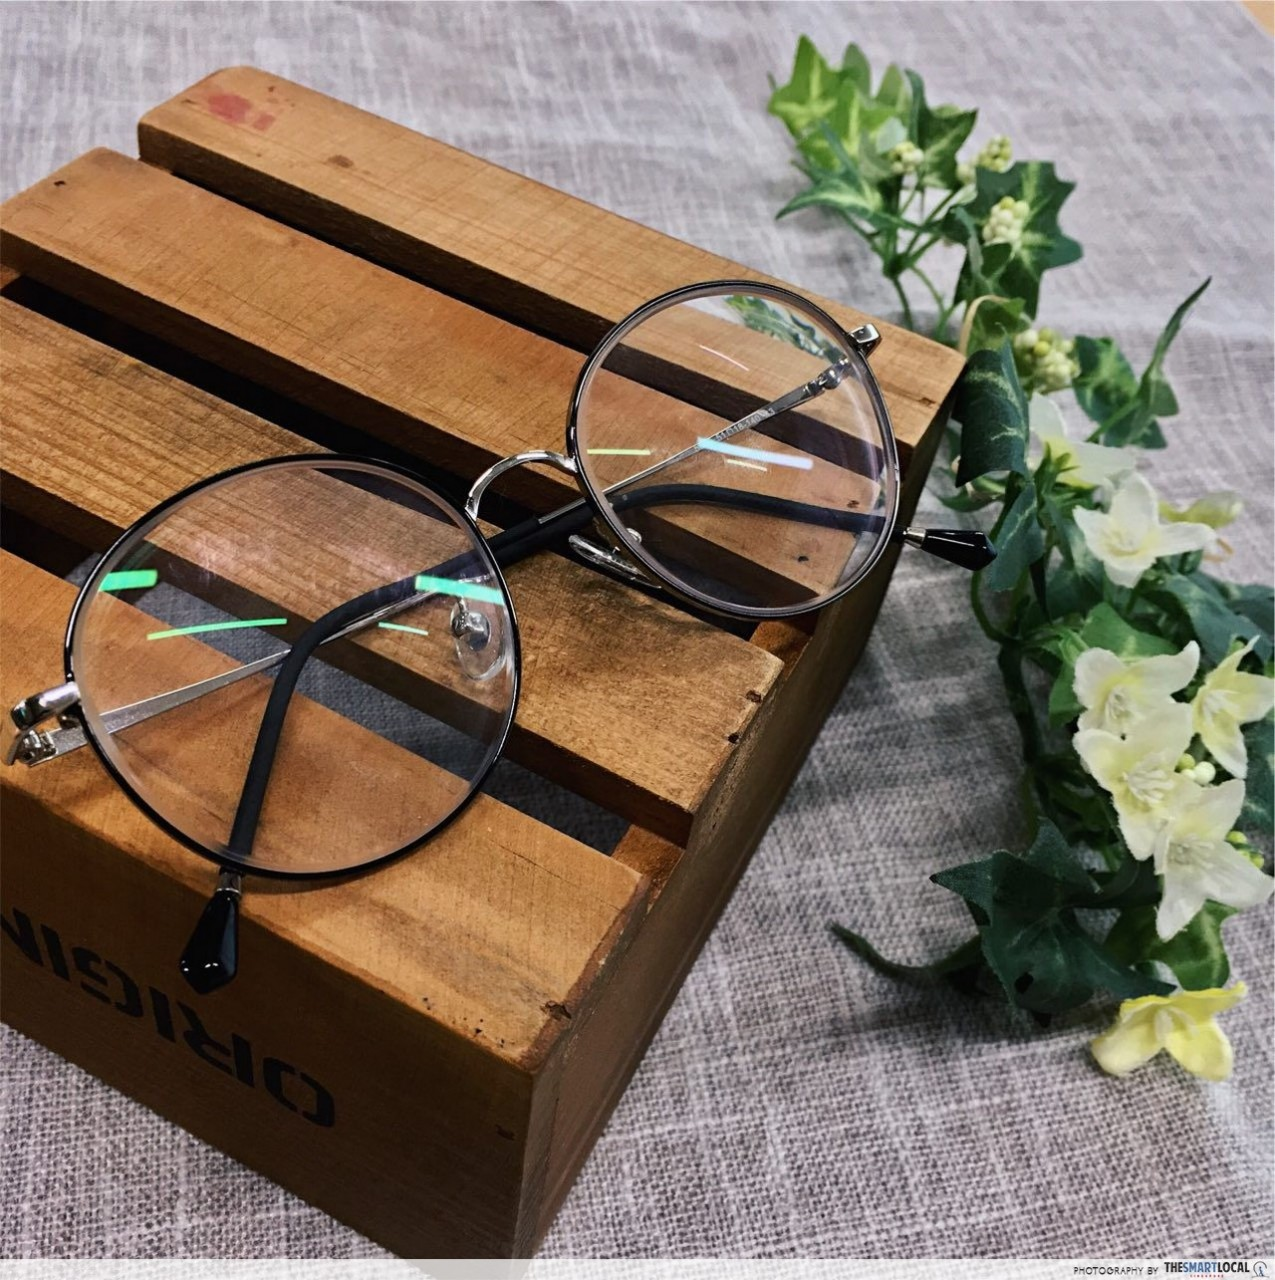 431b6d3f520b 7 Spectacle Stores In Singapore With Affordable Frames   Lenses For ...